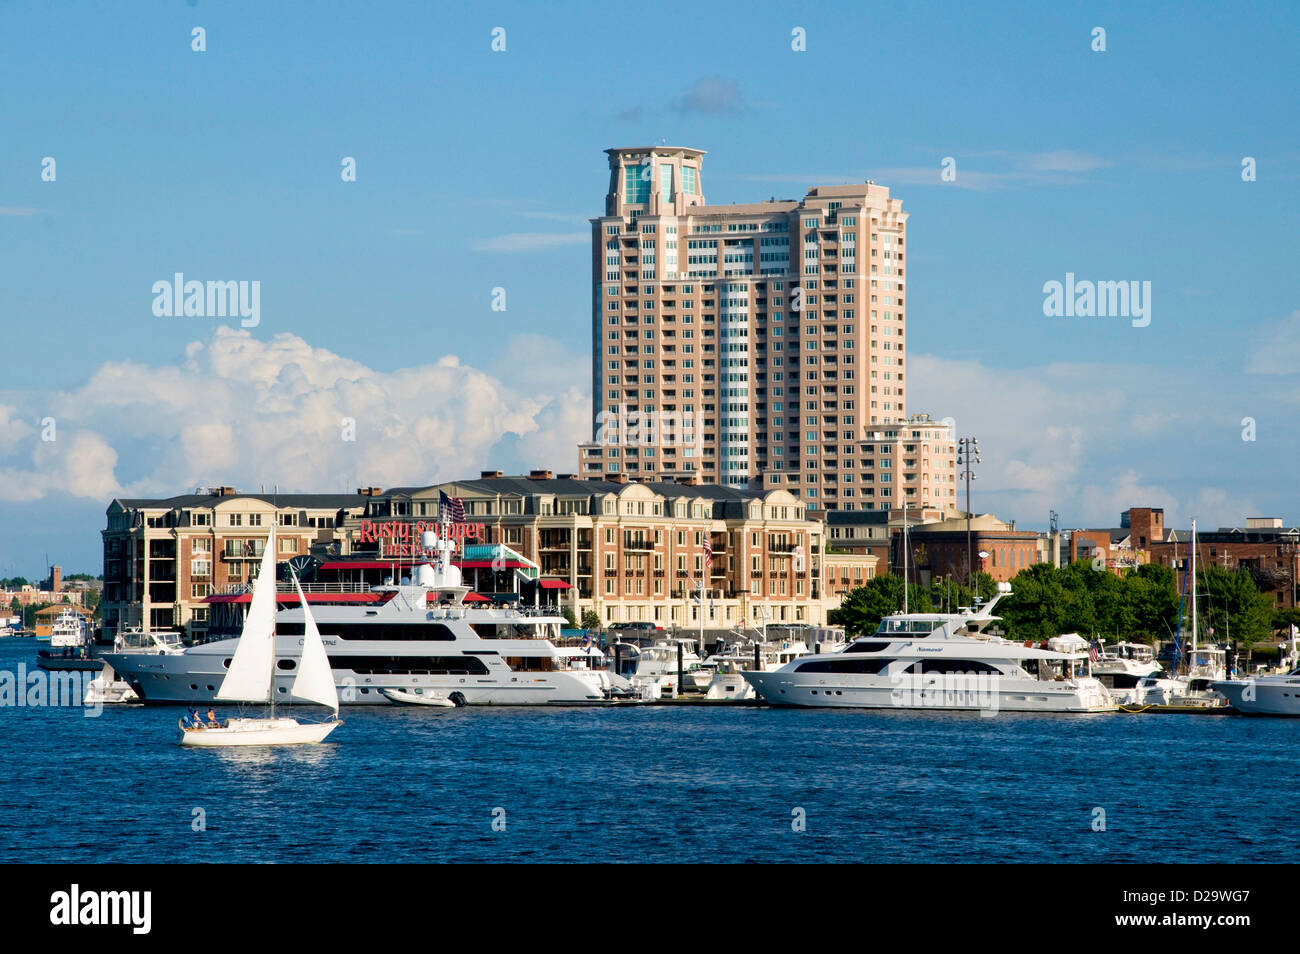 Baltimore Harbor, High Rise Buildings, Maryland. Sailboats - Stock Image